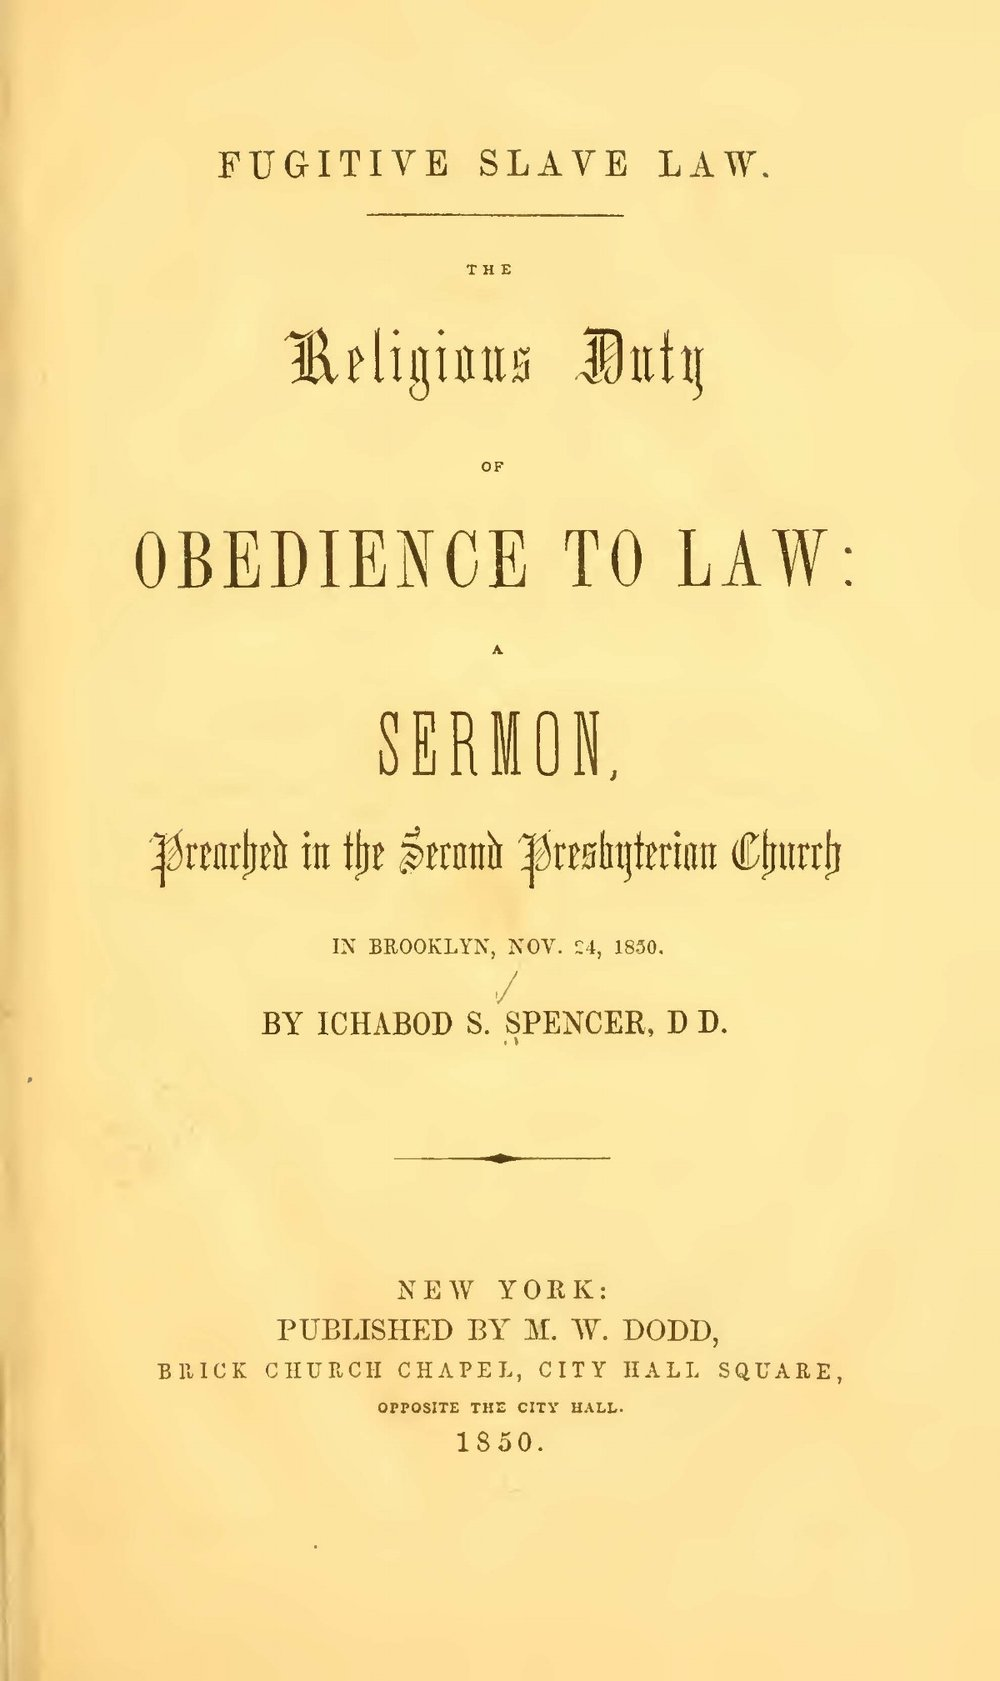 Spencer, Ichabod, Fugitive Slave Law The Religious Duty of Obedience to Law Title Page.jpg